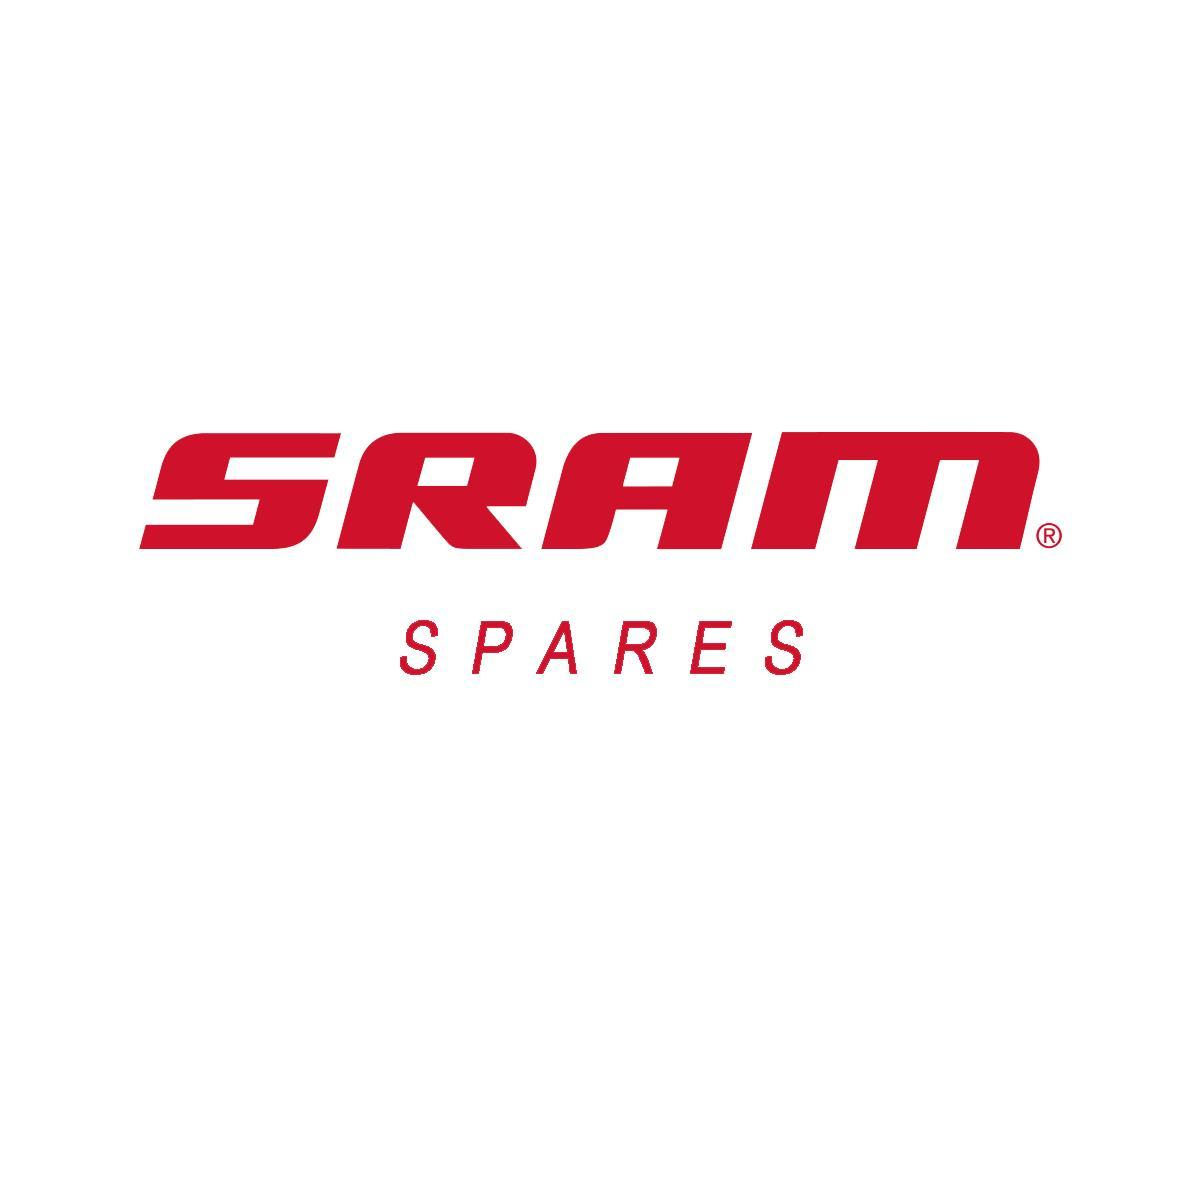 Sram Spare - Wheel Spare Parts Hub Bearing Set Freehub Double Time Includes 2-63803d28) -x0 Hubs/rise60 (b1)/roam 30/roam 40/roam 50/60 (b1)/rail 40